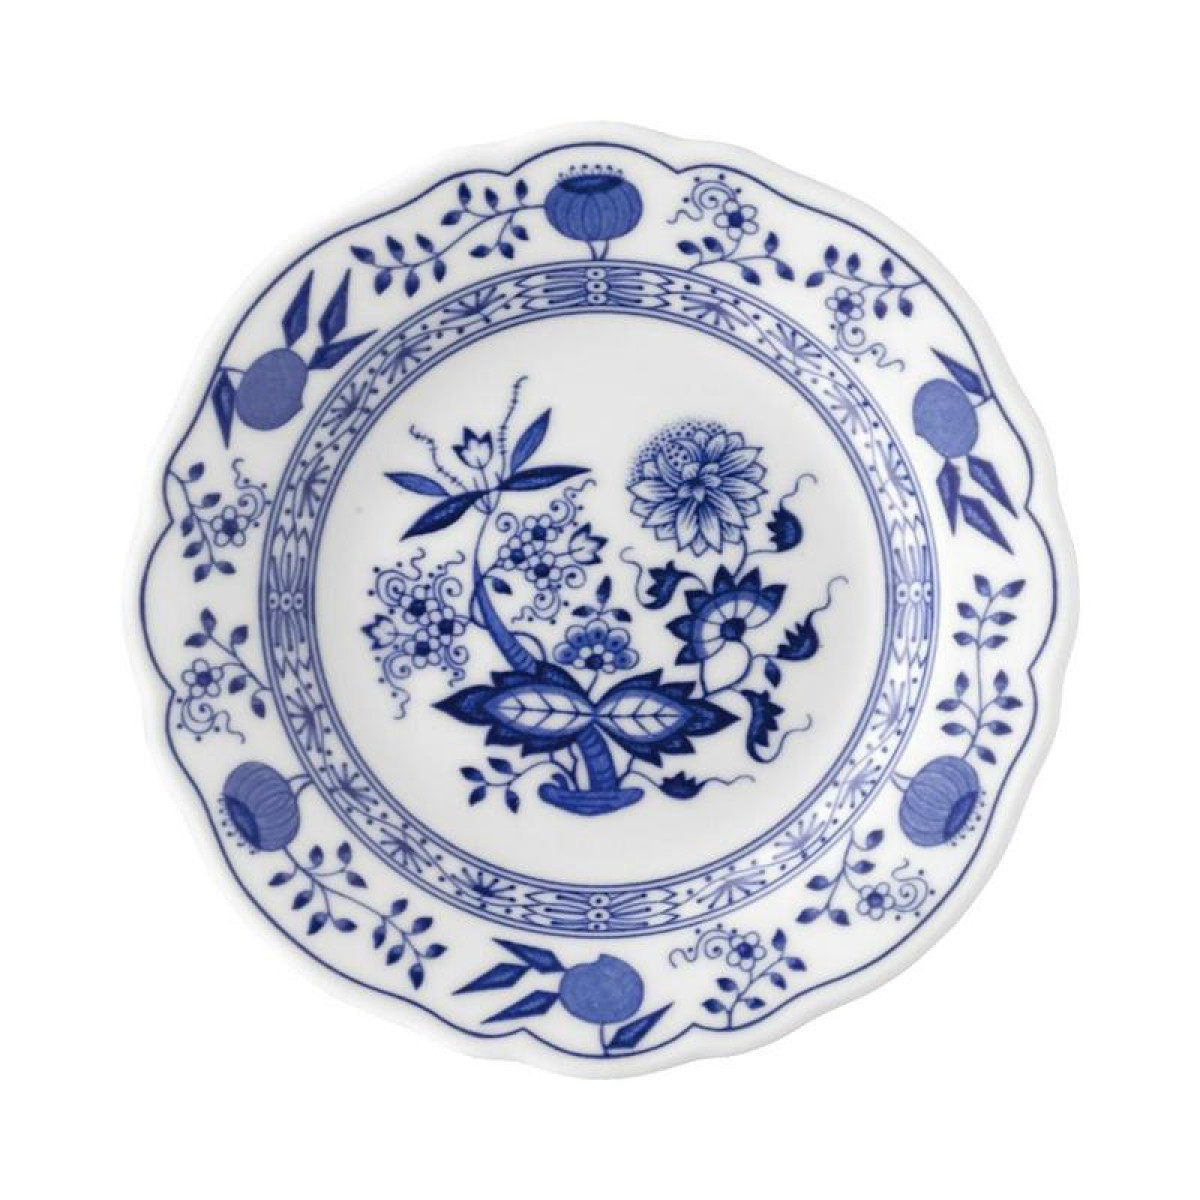 Bread and Butter Plate by Hutschenreuther